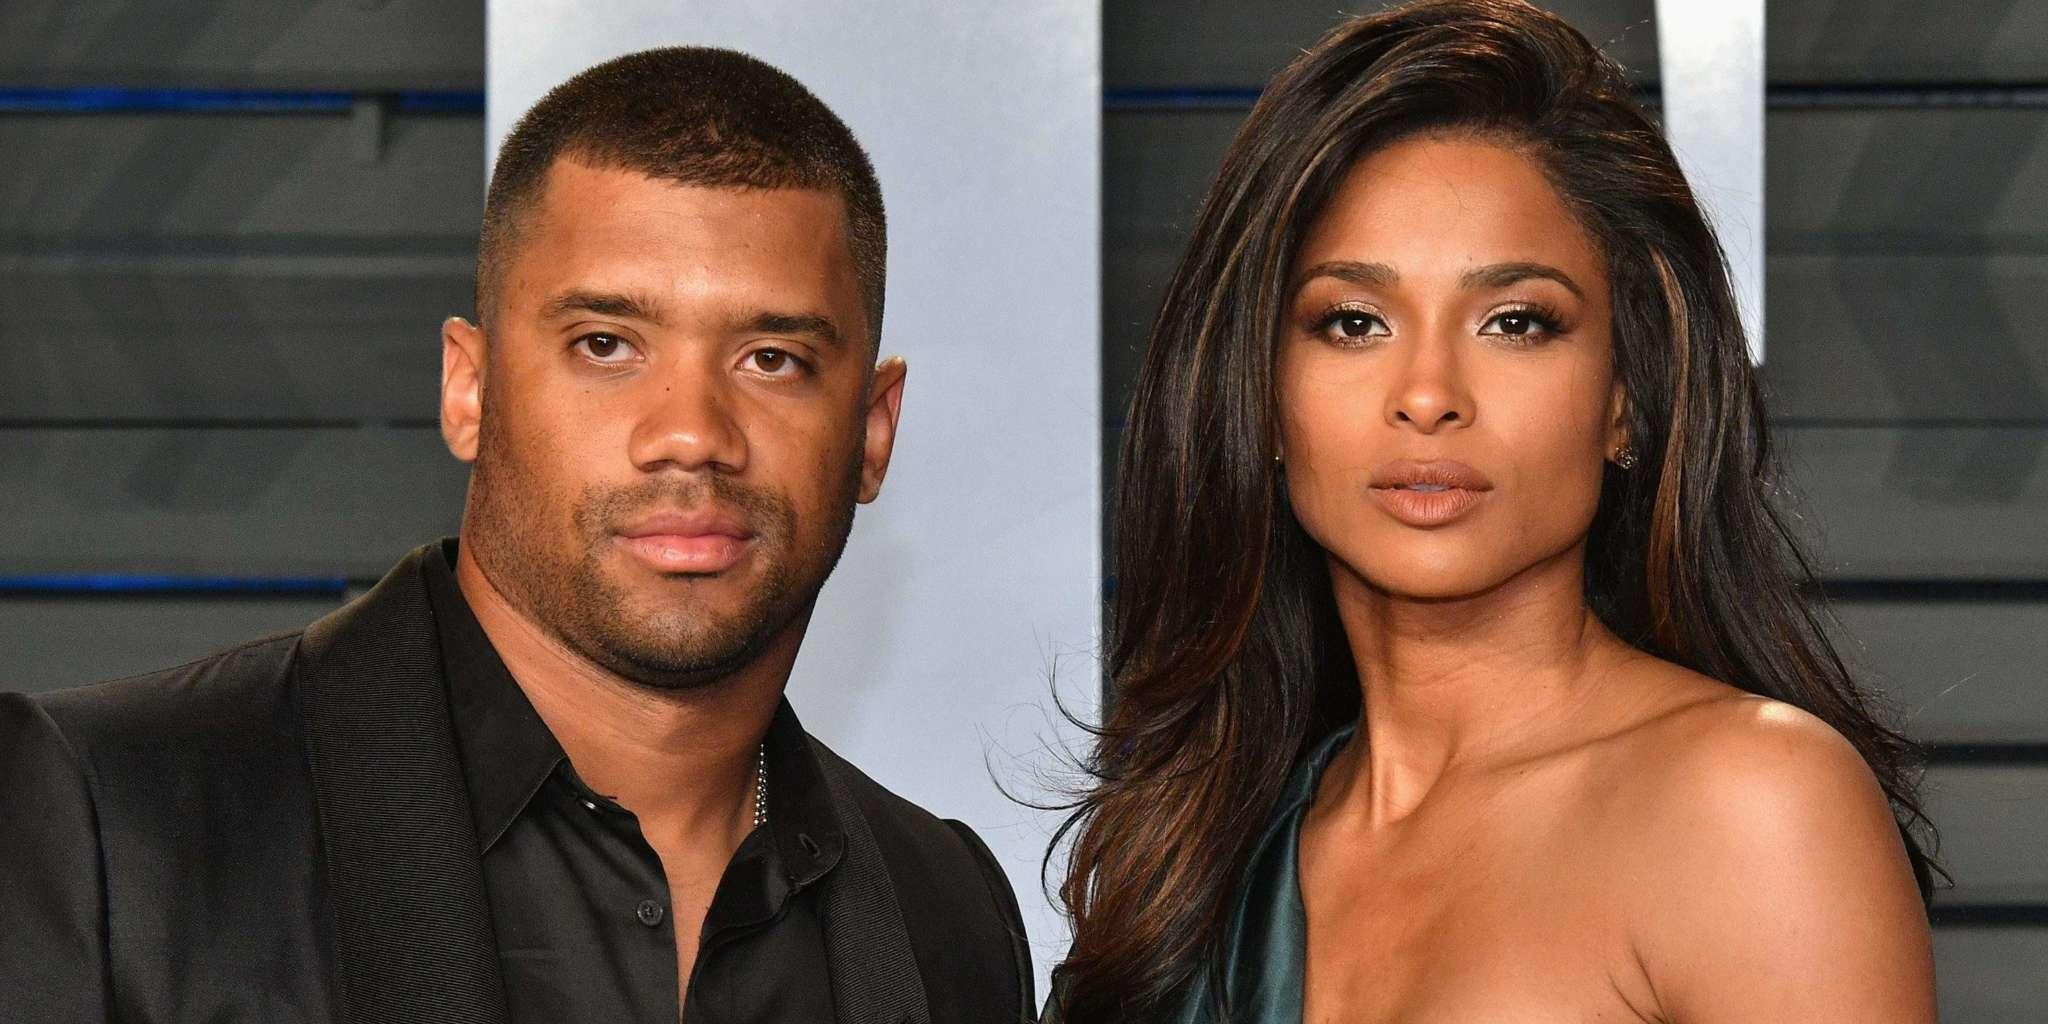 Ciara Raves About Her Husband Russell Wilson On His Birthday - Check Out The Cute Pic She Posted As Well!